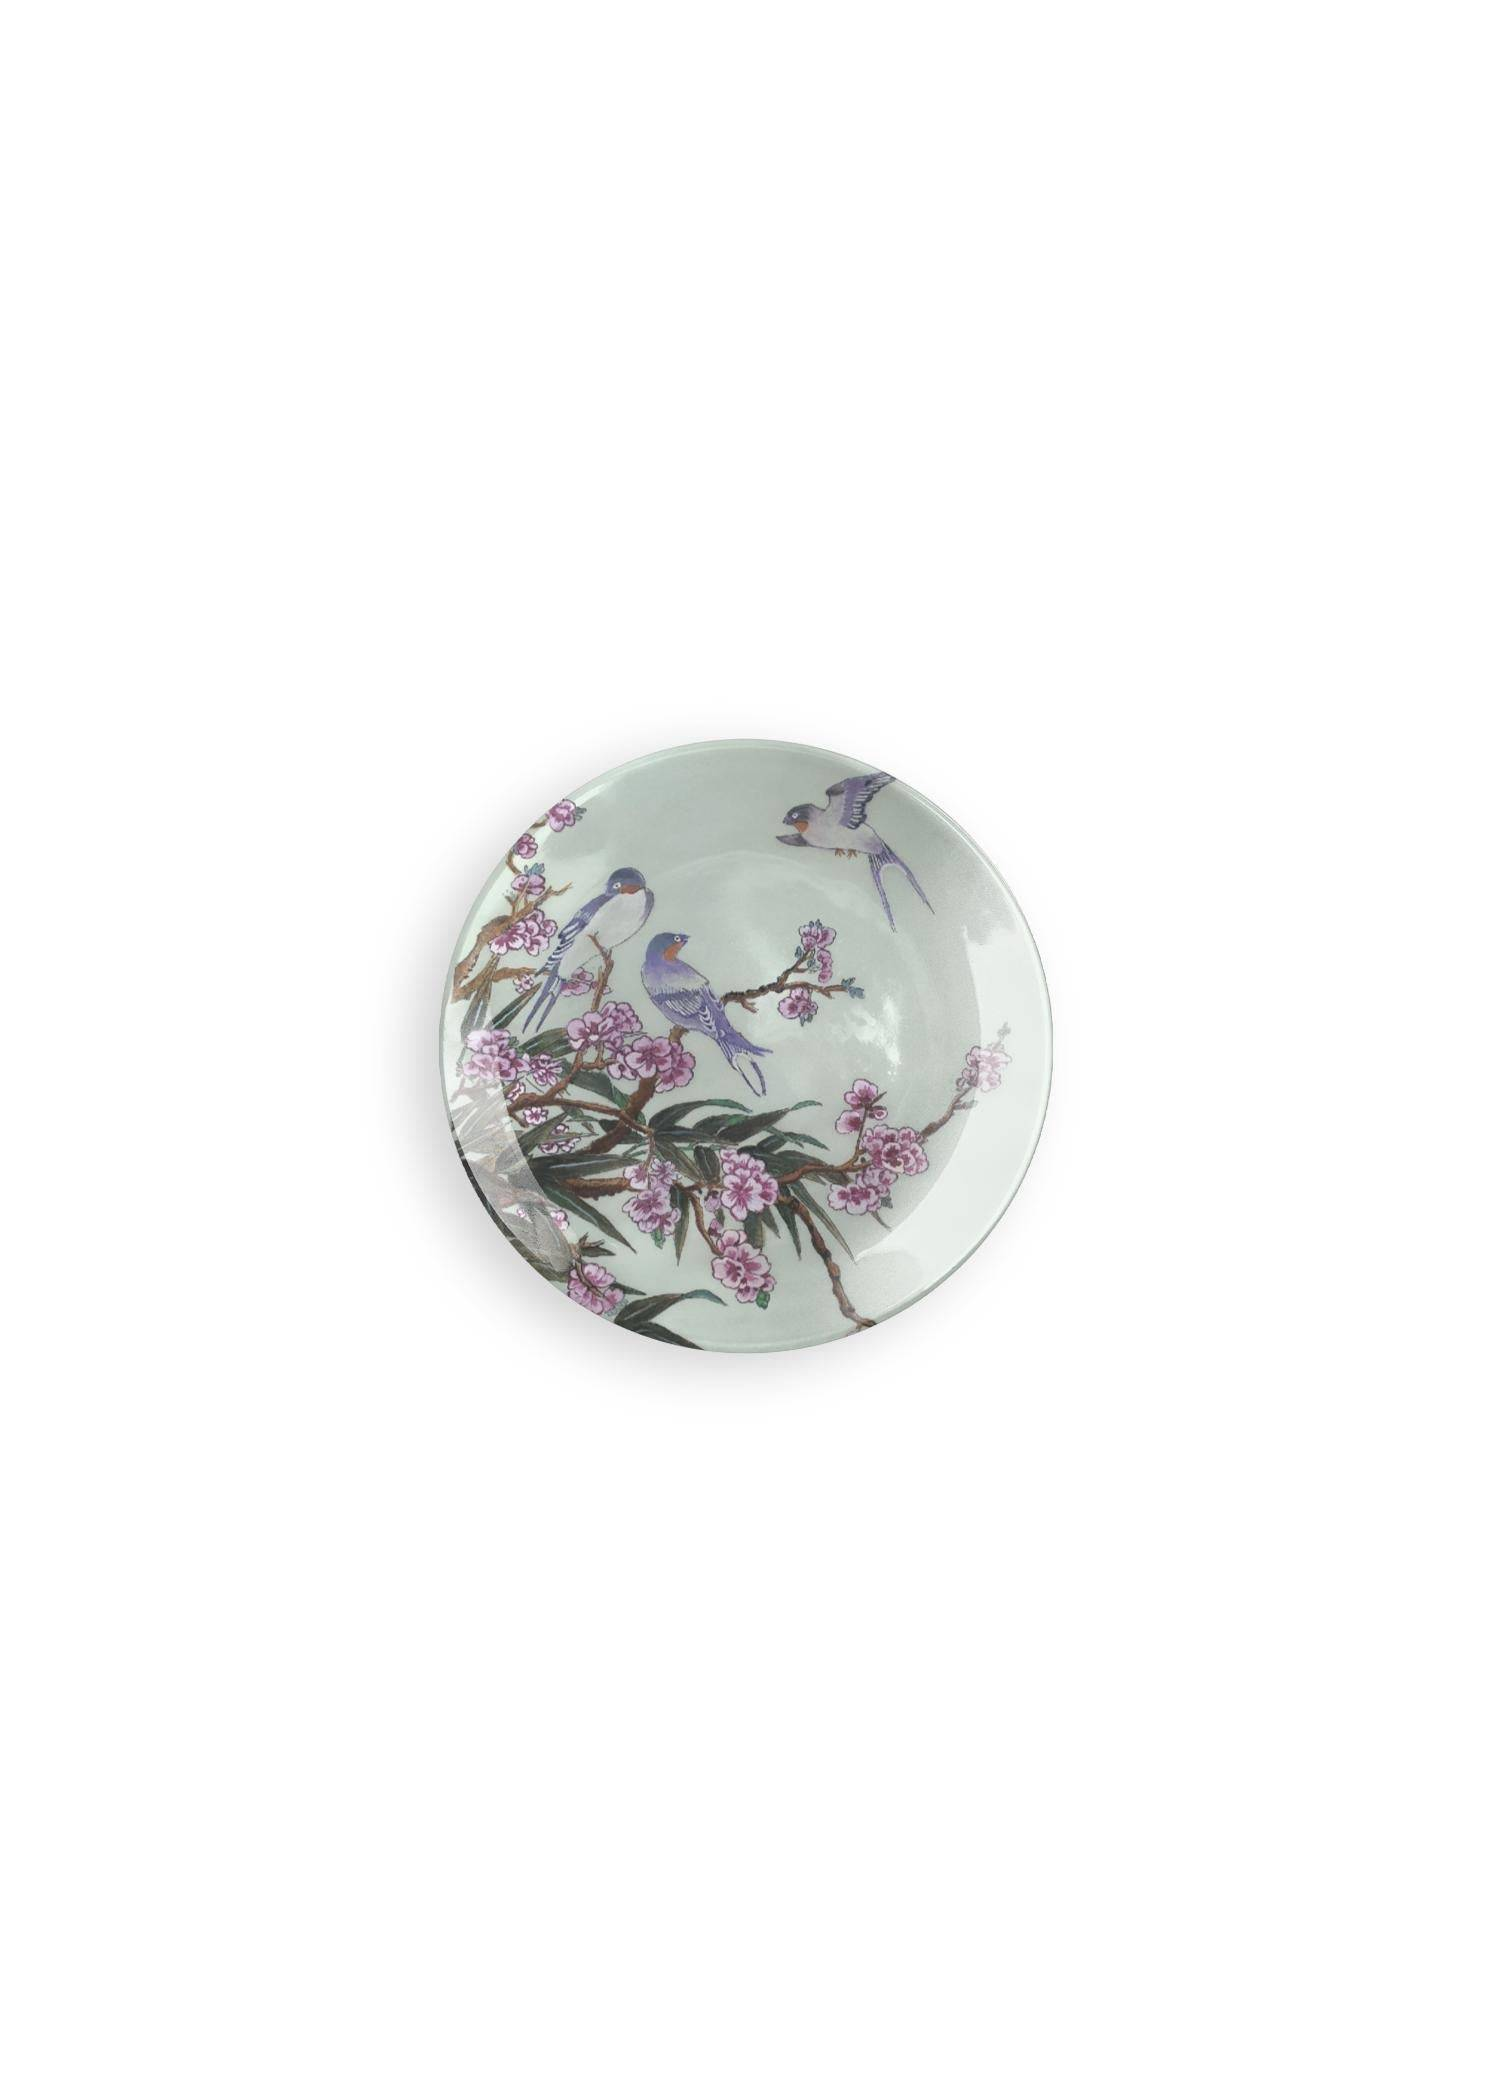 VIDA Round Glass Tray - Eastern Floral Garden by VIDA Original Artist  - Size: Small